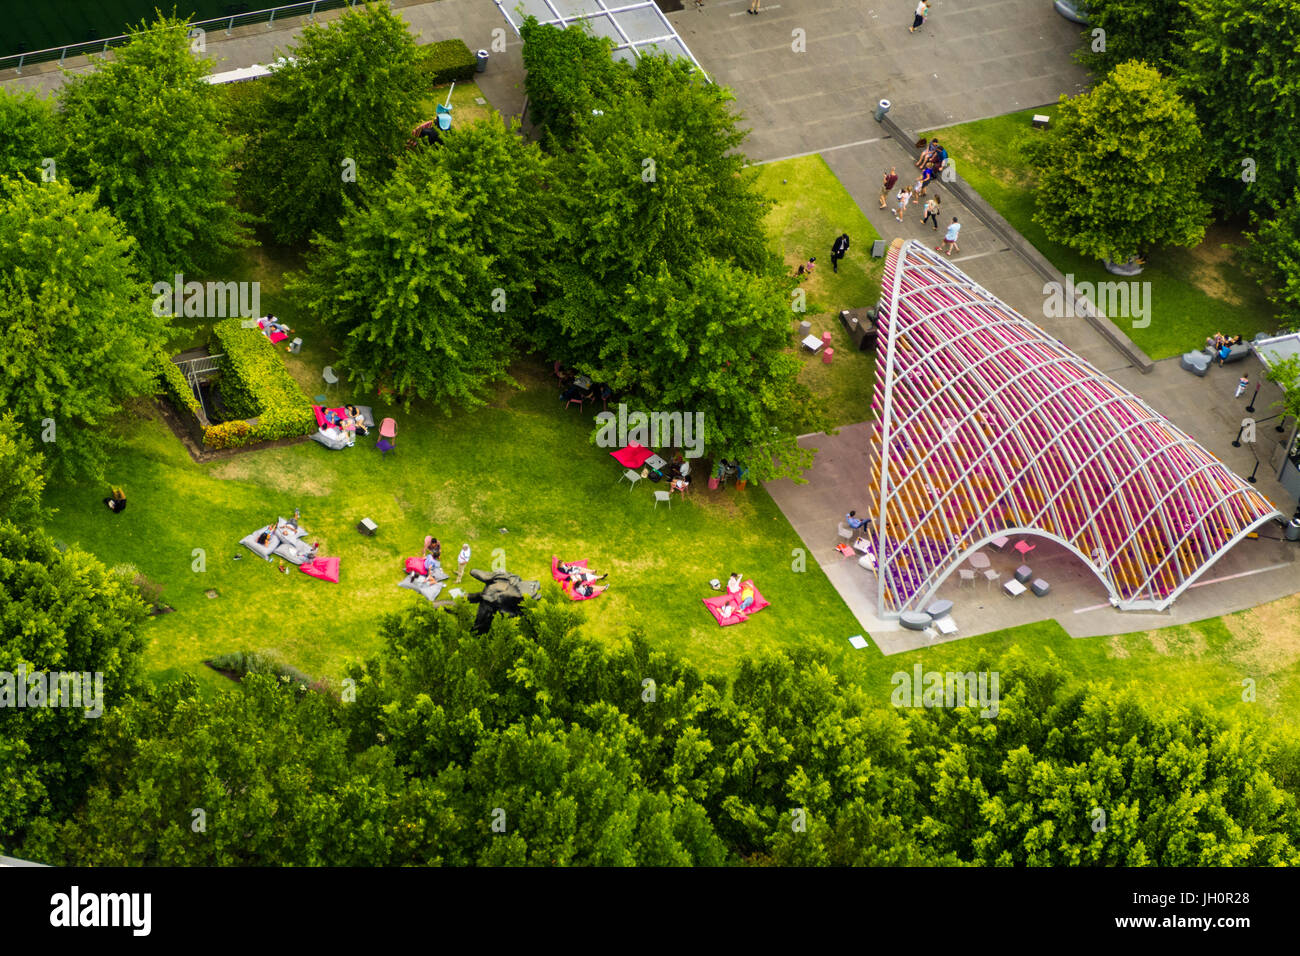 people enjoying a garden park with bean bags and a colourful shelter - Stock Image